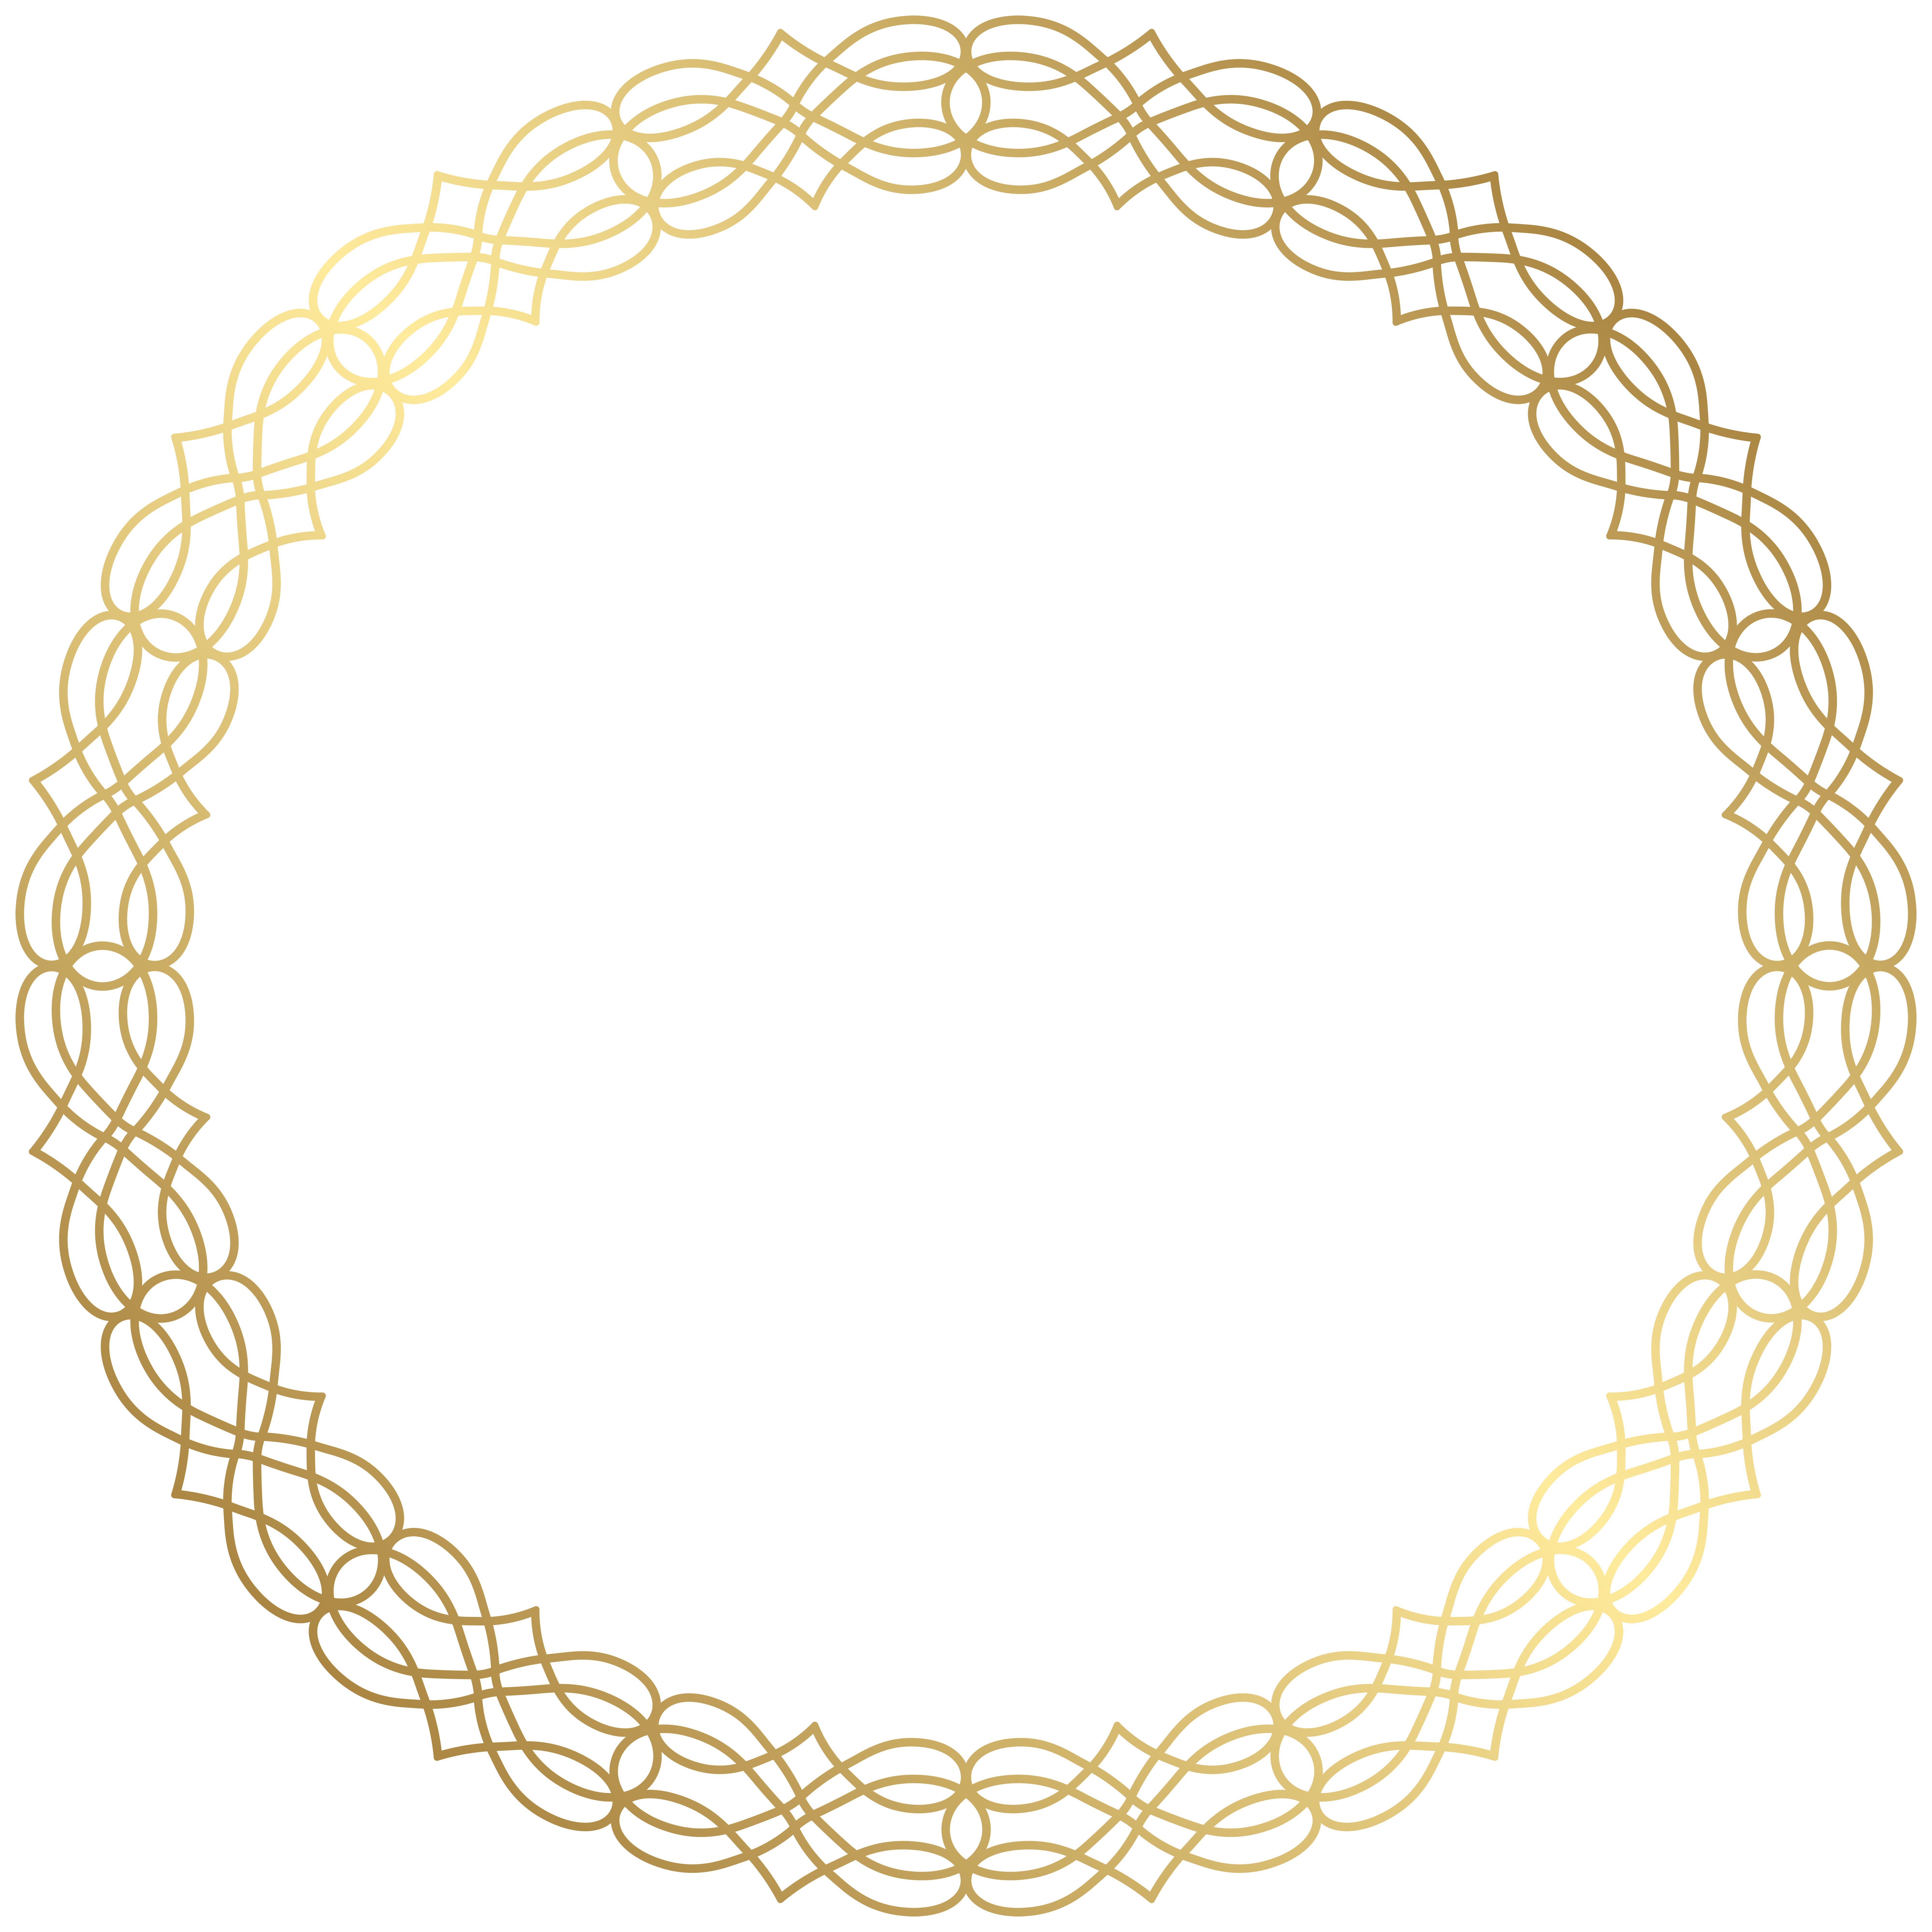 Round circle gold border with white center clipart clipart Circle Gold Clip art - Round Gold Border Transparent PNG ... clipart